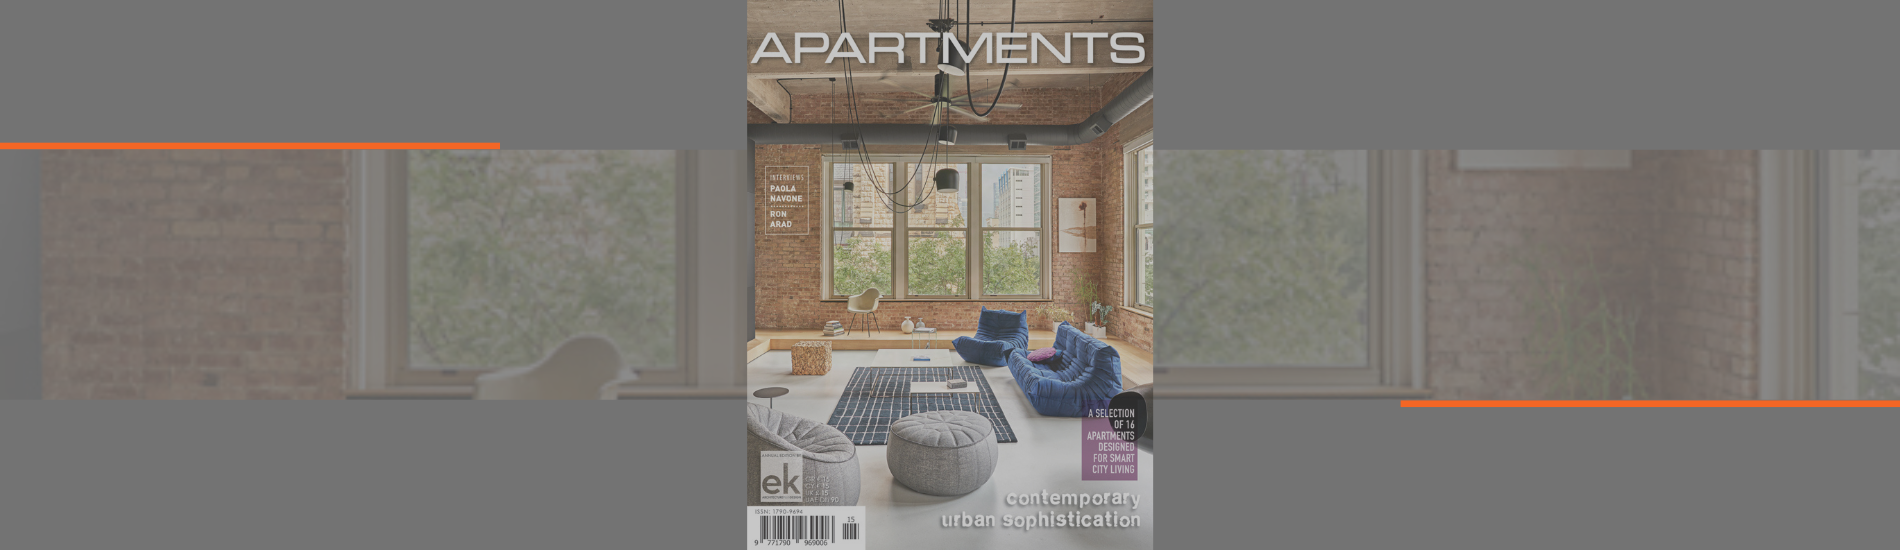 PUBLICATION: APARTMENTS 2021 by ek magazine